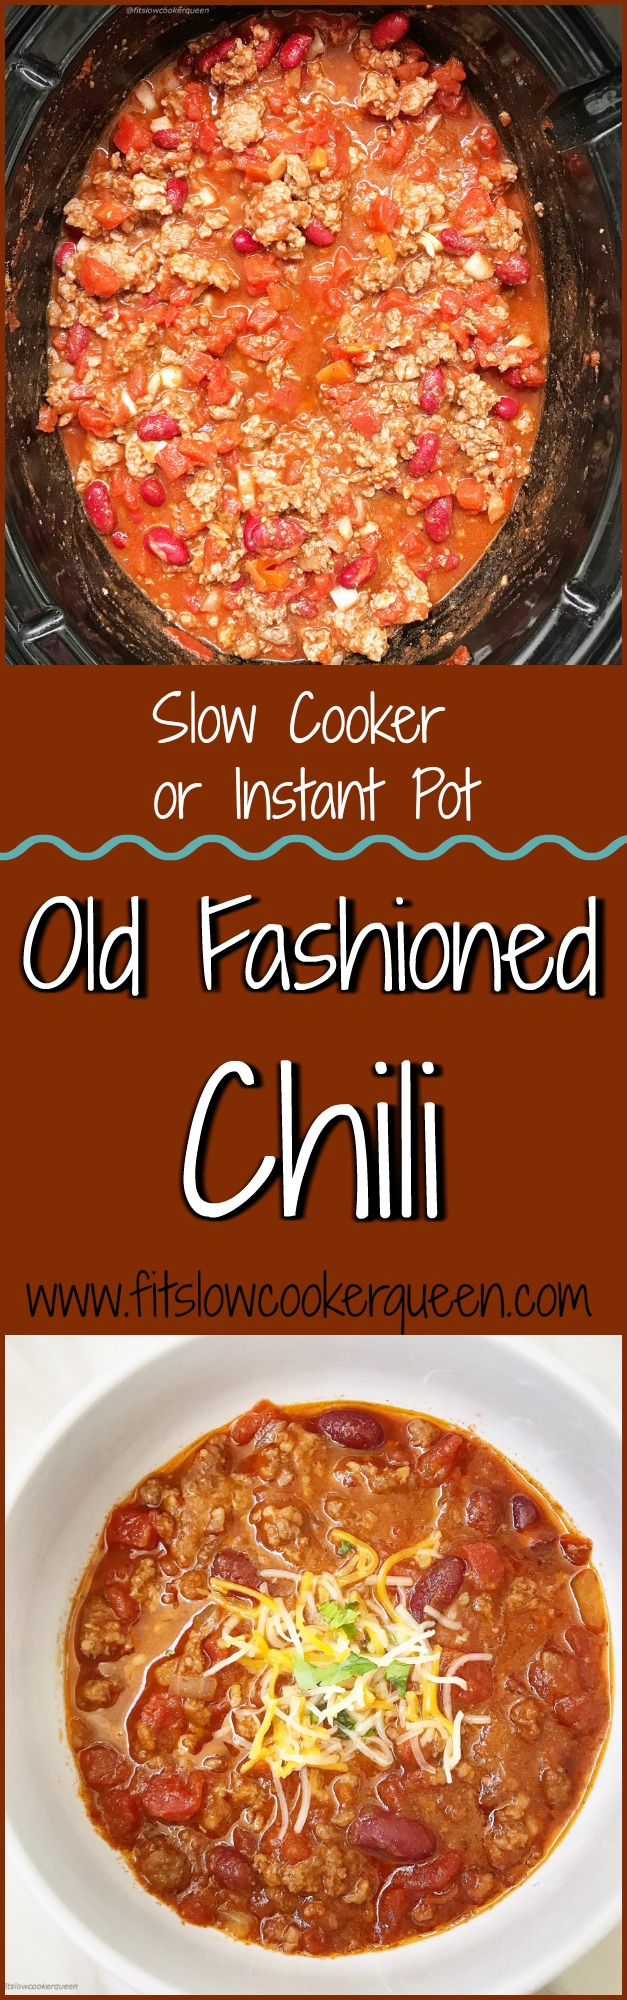 Chili is an easy and comforting recipe that everyone seems to enjoy. This simple yet flavorful recipe can be made in the Instant Pot or slow cooker.